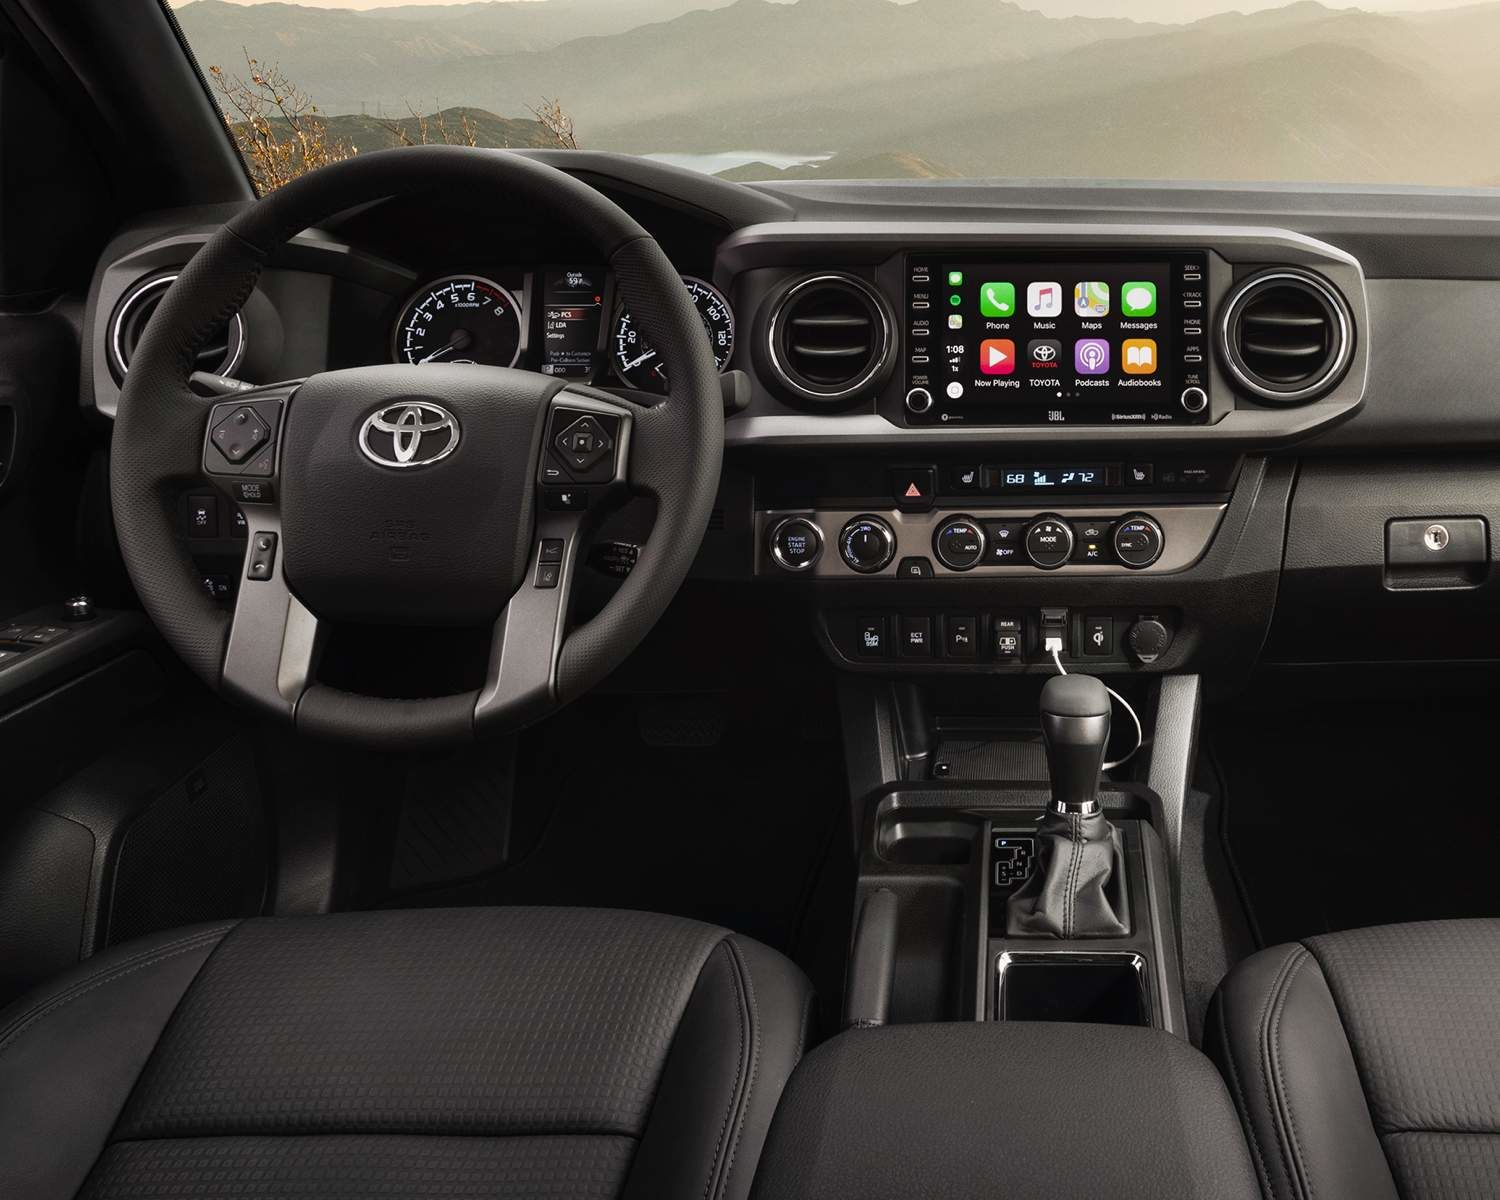 2021 Toyota Tacoma's interior dashboard, with touch screen technology